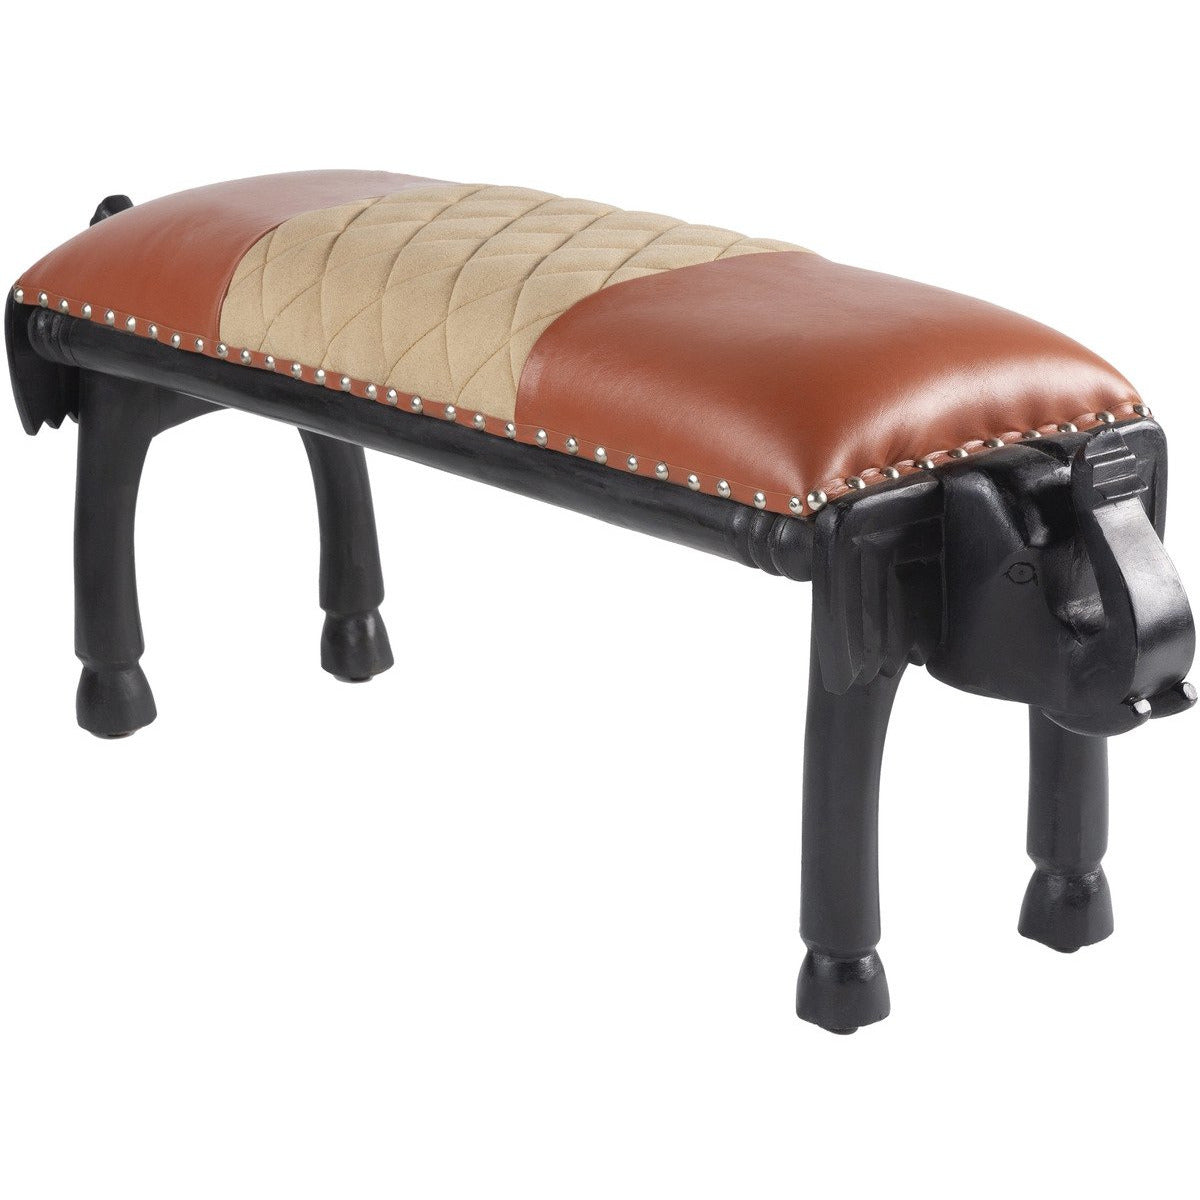 Accent And Storage Benches - Haathi HAA-001 Bench